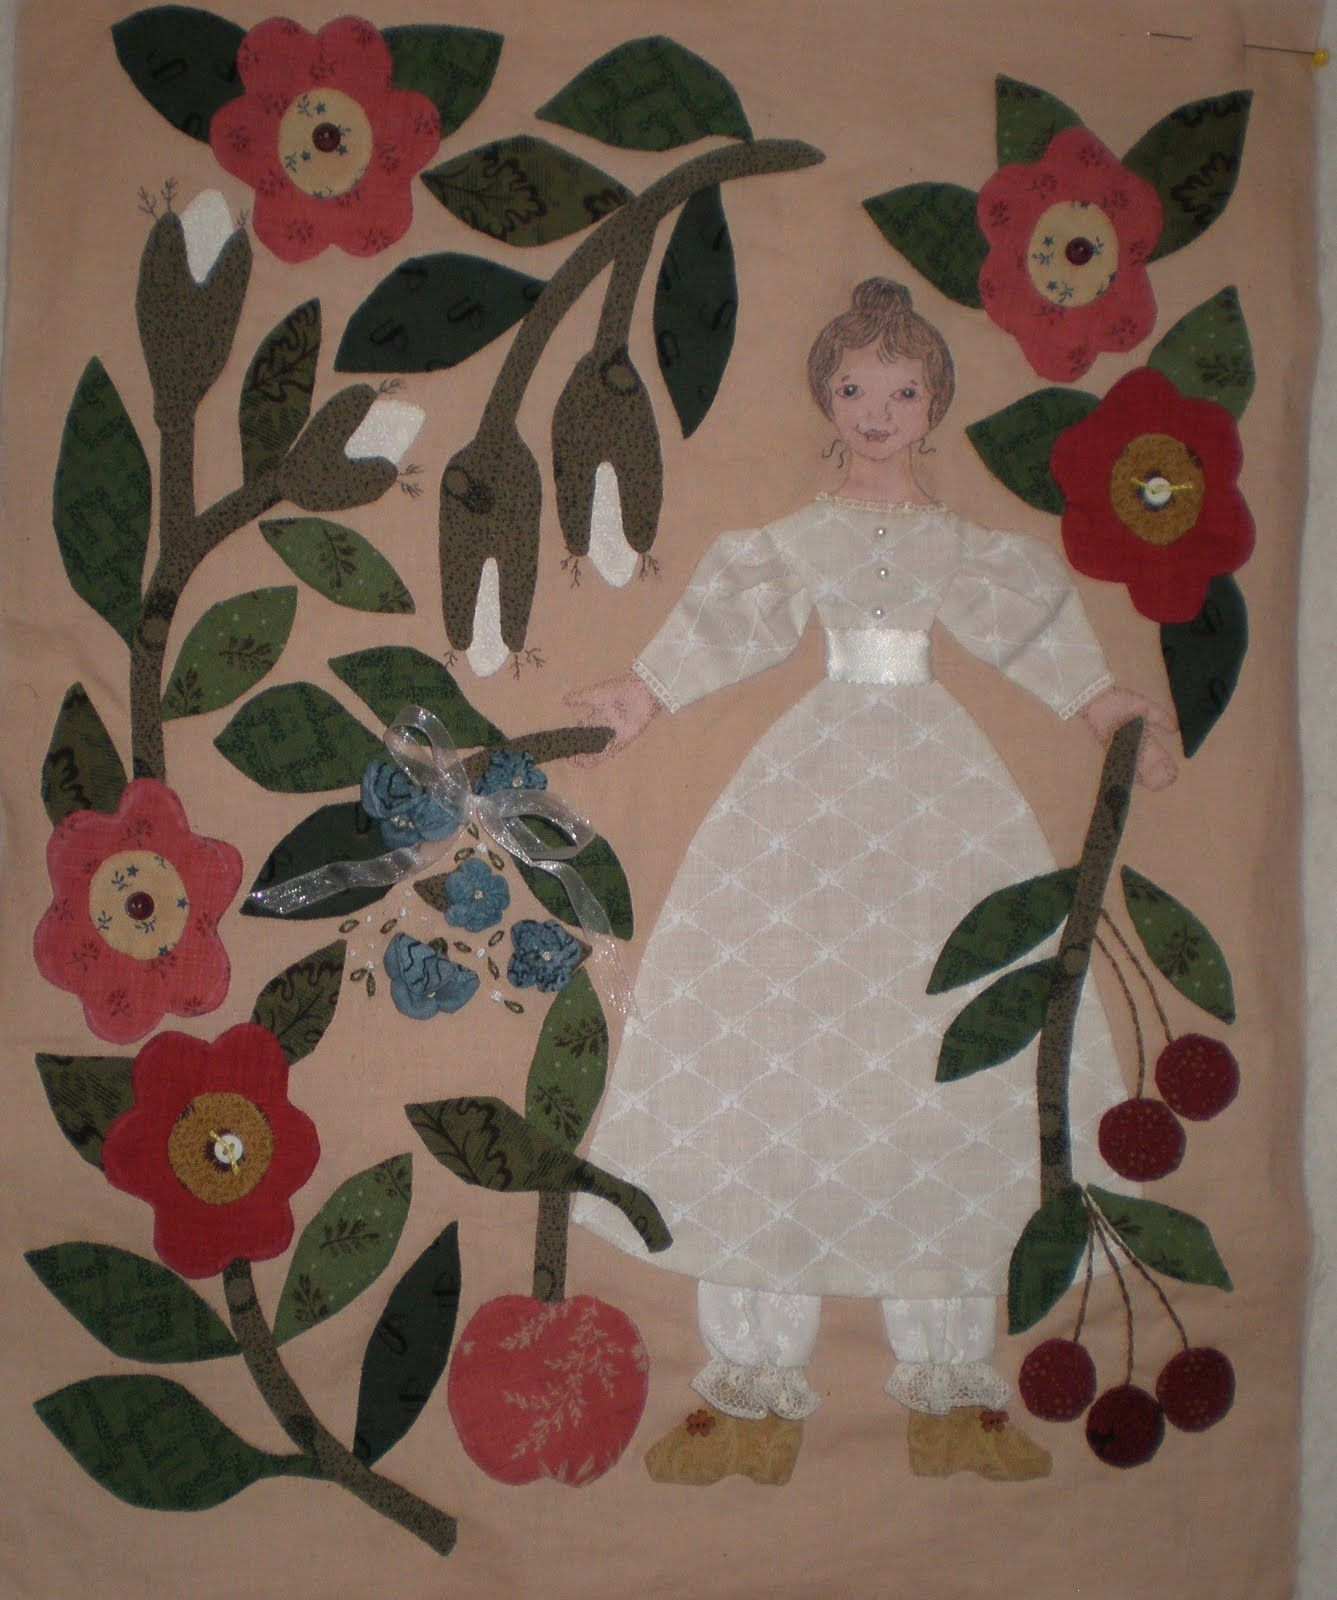 The Civil War Bride Quilt: Block 3 | Civil War Bride | Pinterest